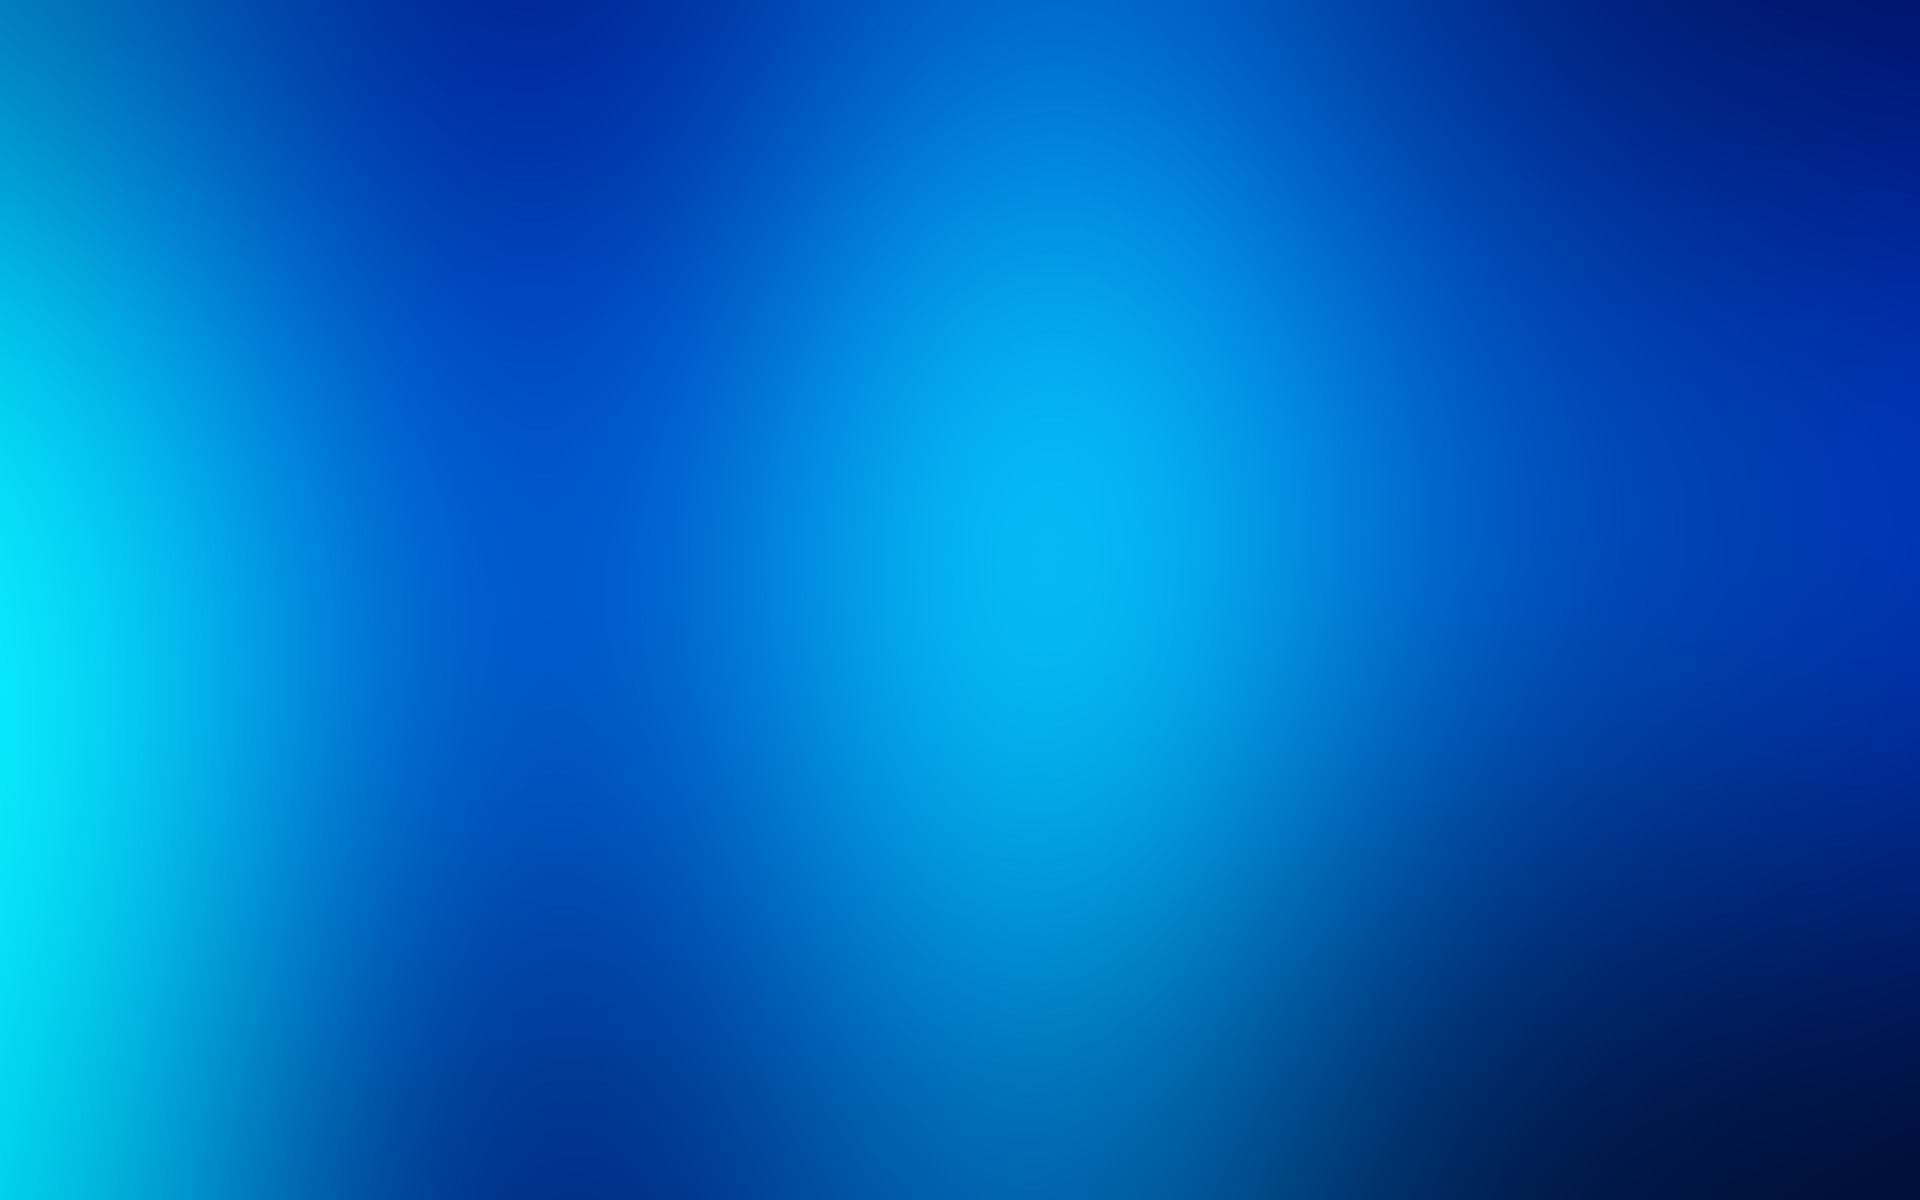 1920x1200 Blue Background Gradient 747173